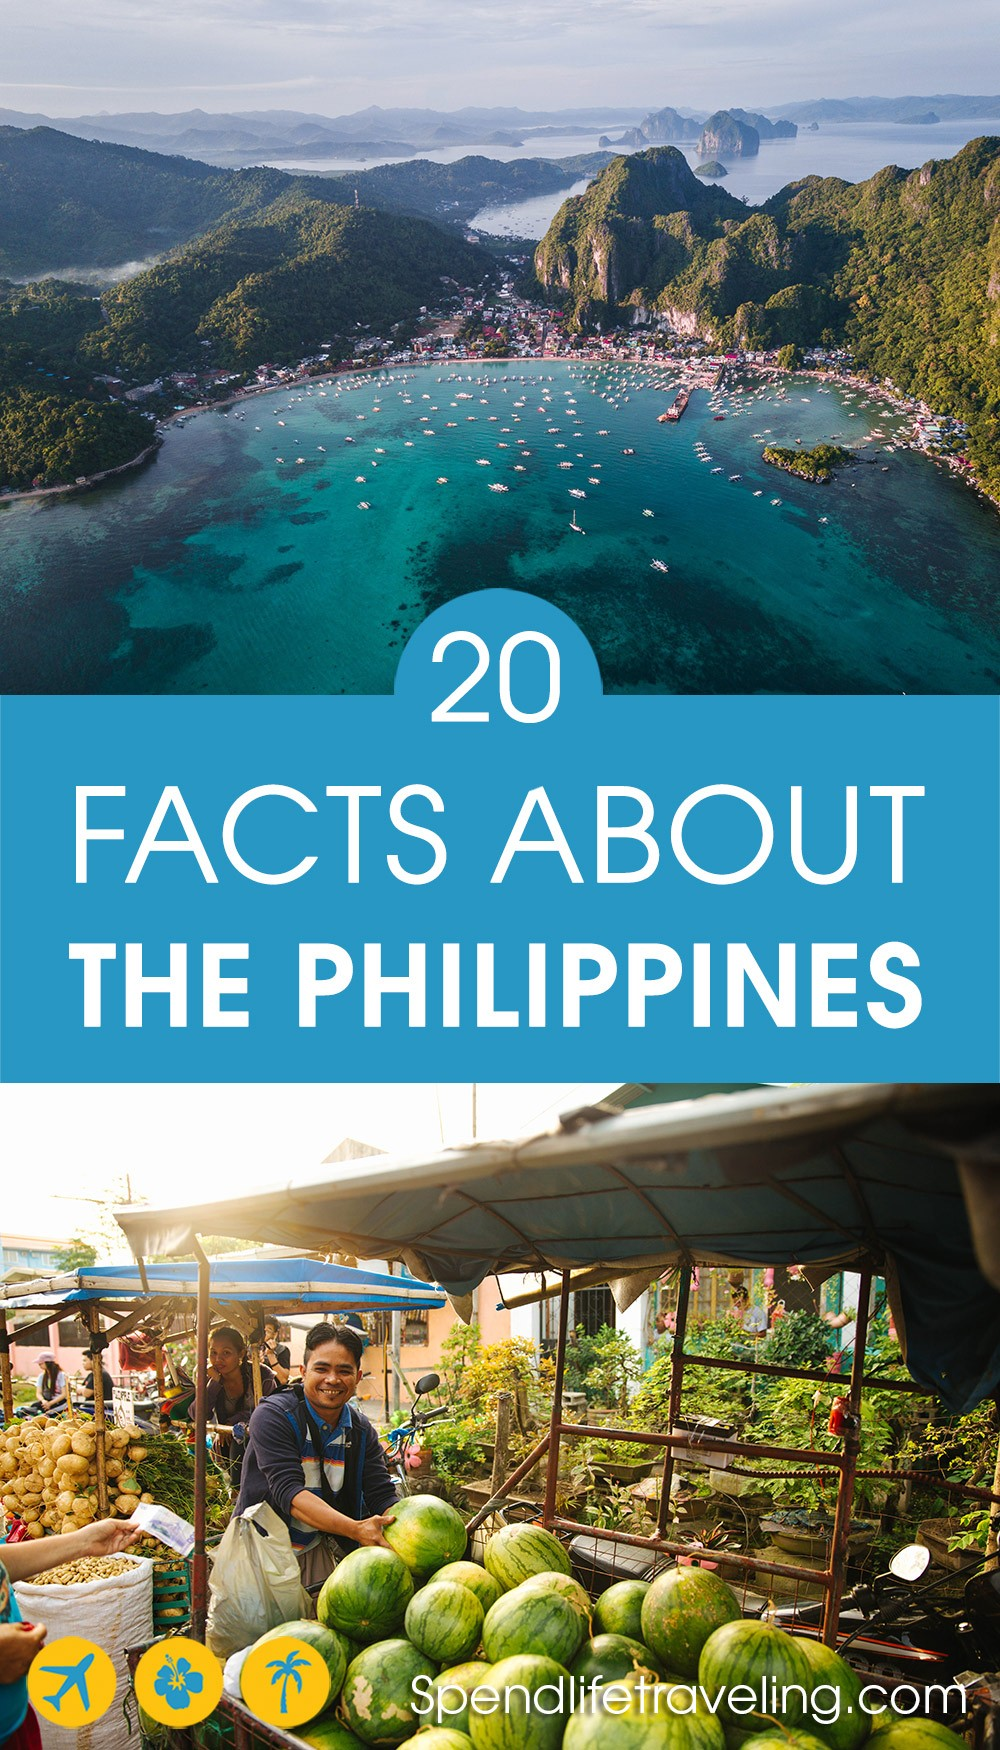 20 facts about the Philippines